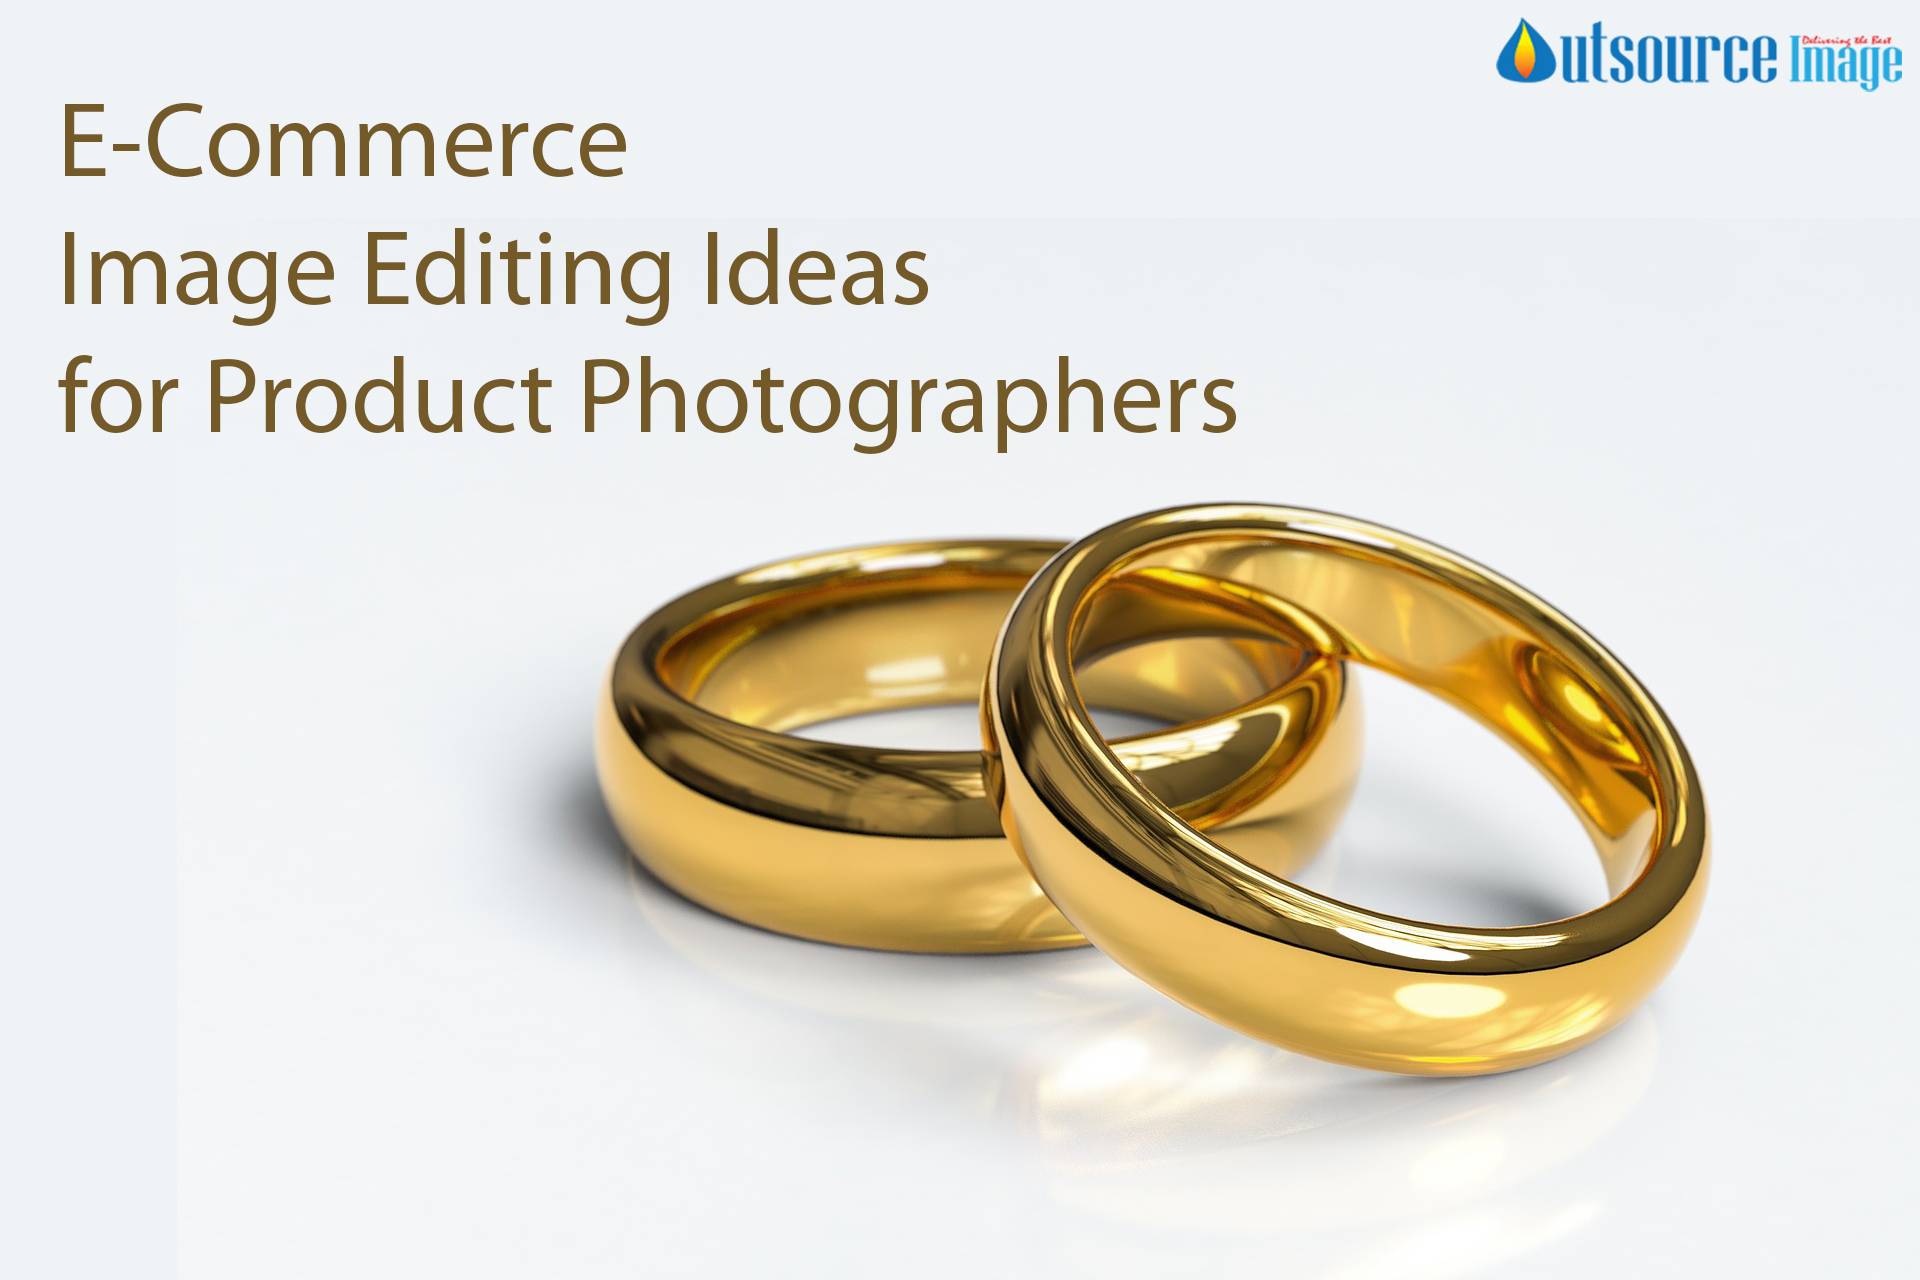 E-Commerce Image Editing Ideas for Product Photographers.